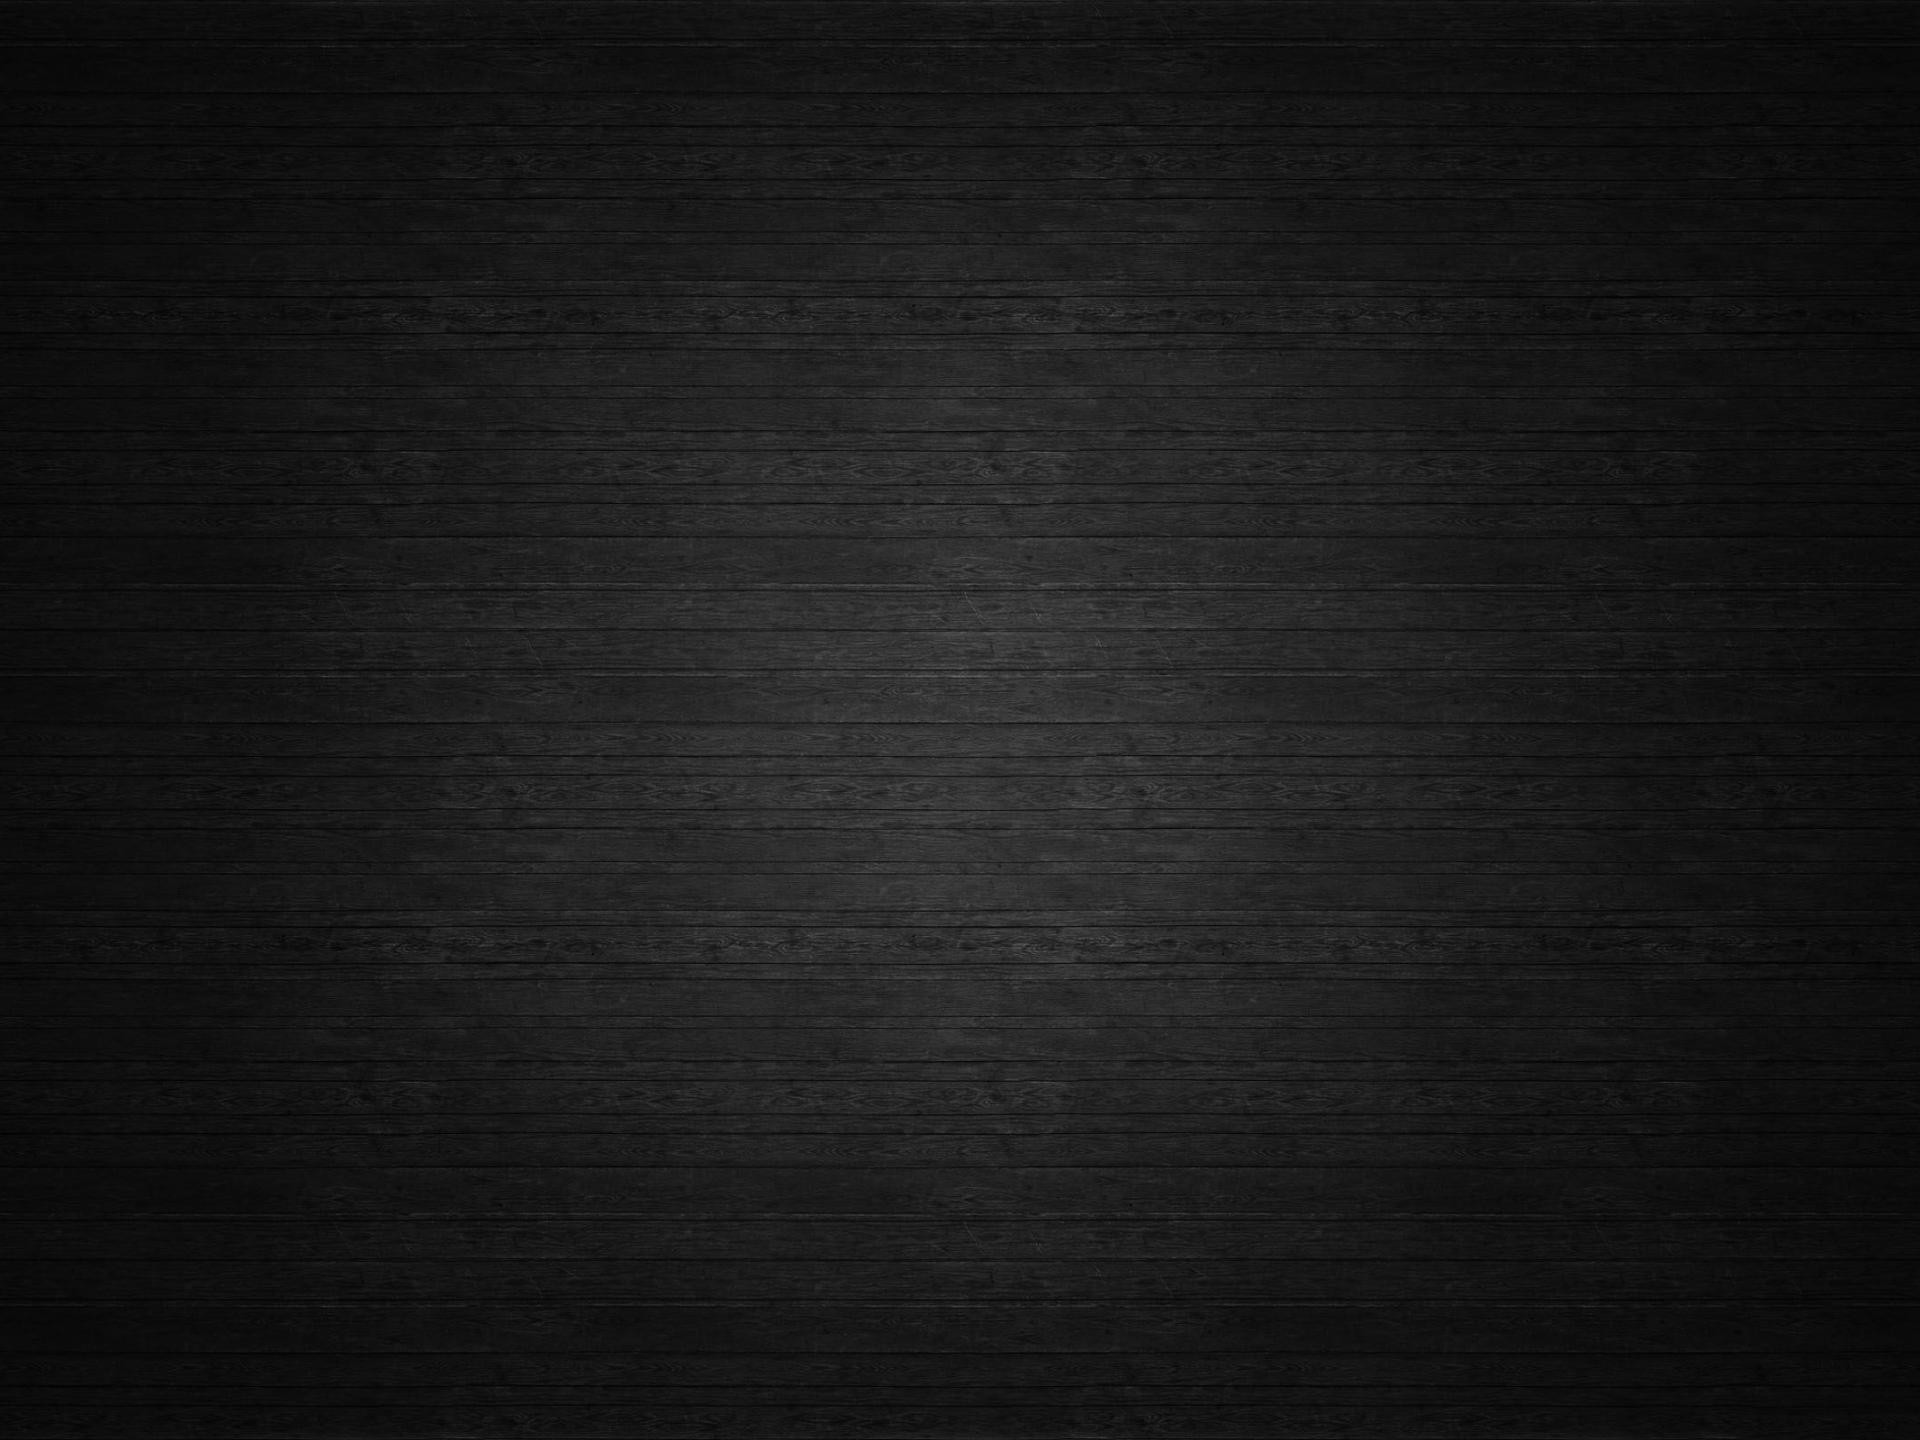 Dark Abstract Background 62 Images